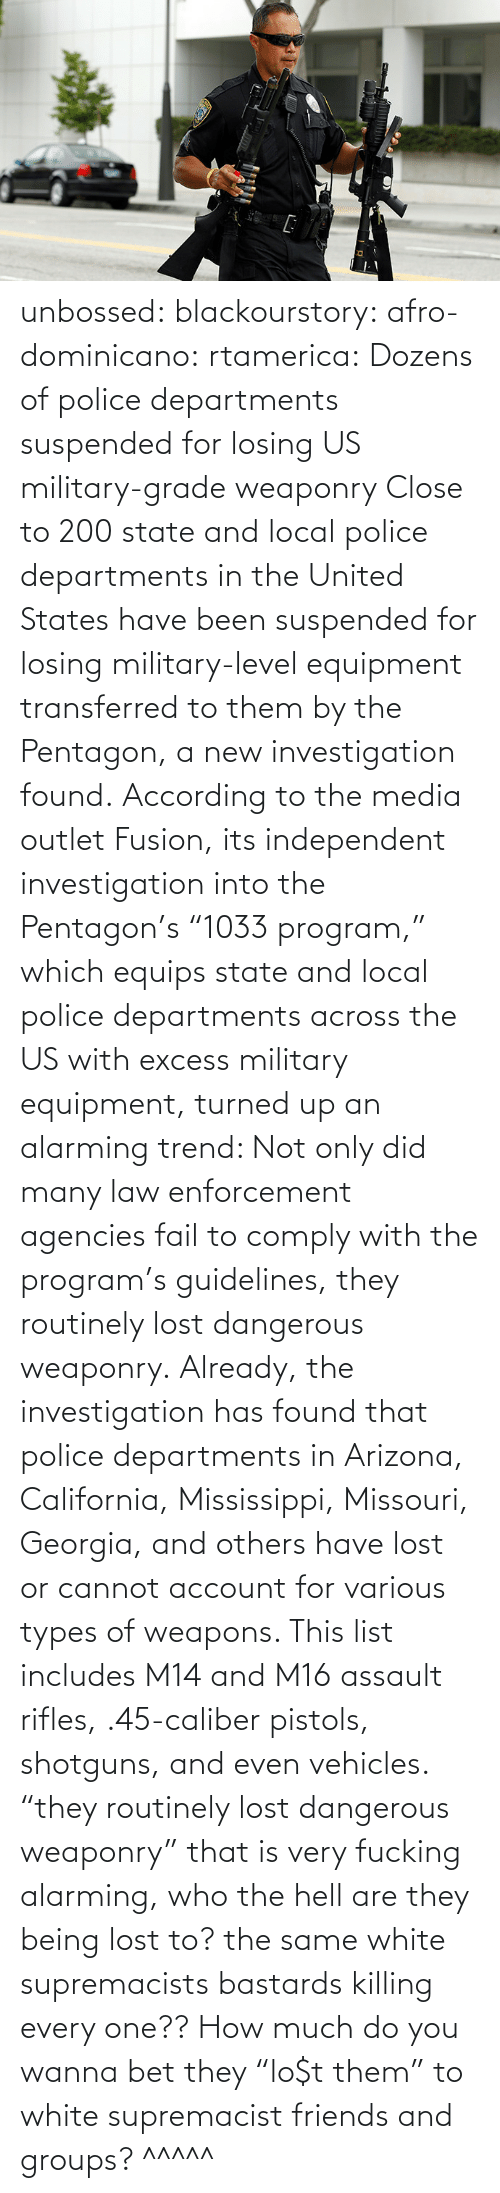 "program: unbossed: blackourstory:  afro-dominicano:  rtamerica:  Dozens of police departments suspended for losing US military-grade weaponry Close to 200 state and local police departments in the United States have been suspended for losing military-level equipment transferred to them by the Pentagon, a new investigation found. According to the media outlet Fusion, its independent investigation into the Pentagon's ""1033 program,"" which equips state and local police departments across the US with excess military equipment, turned up an alarming trend: Not only did many law enforcement agencies fail to comply with the program's guidelines, they routinely lost dangerous weaponry. Already, the investigation has found that police departments in Arizona, California, Mississippi, Missouri, Georgia, and others have lost or cannot account for various types of weapons. This list includes M14 and M16 assault rifles, .45-caliber pistols, shotguns, and even vehicles.  ""they routinely lost dangerous weaponry"" that is very fucking alarming, who the hell are they being lost to? the same white supremacists bastards killing every one??  How much do you wanna bet they ""lo$t them"" to white supremacist friends and groups?   ^^^^^"